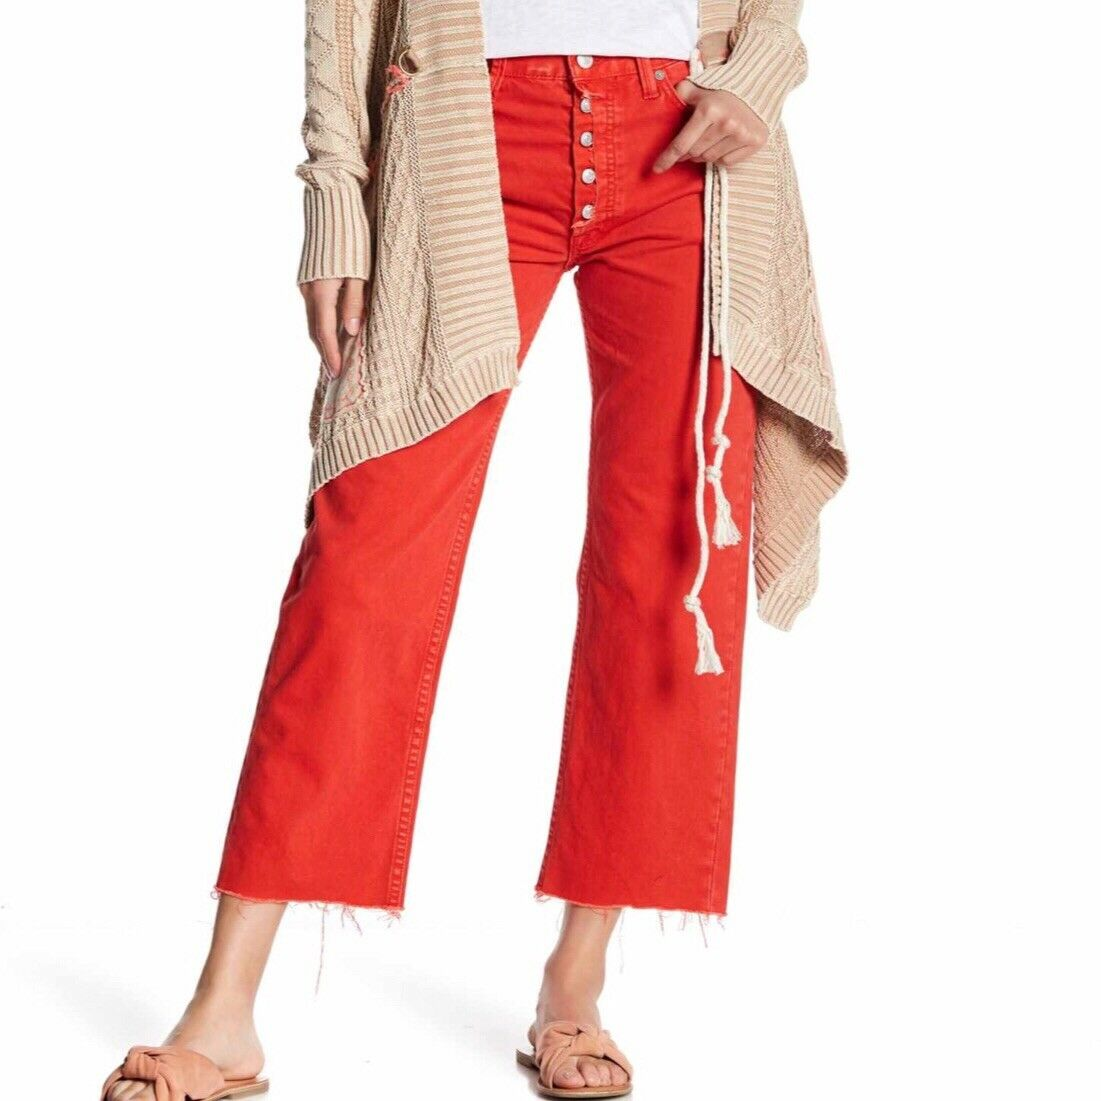 Free People Rolling On The River Jeans 26 New Woman Red Wide Leg Ankle